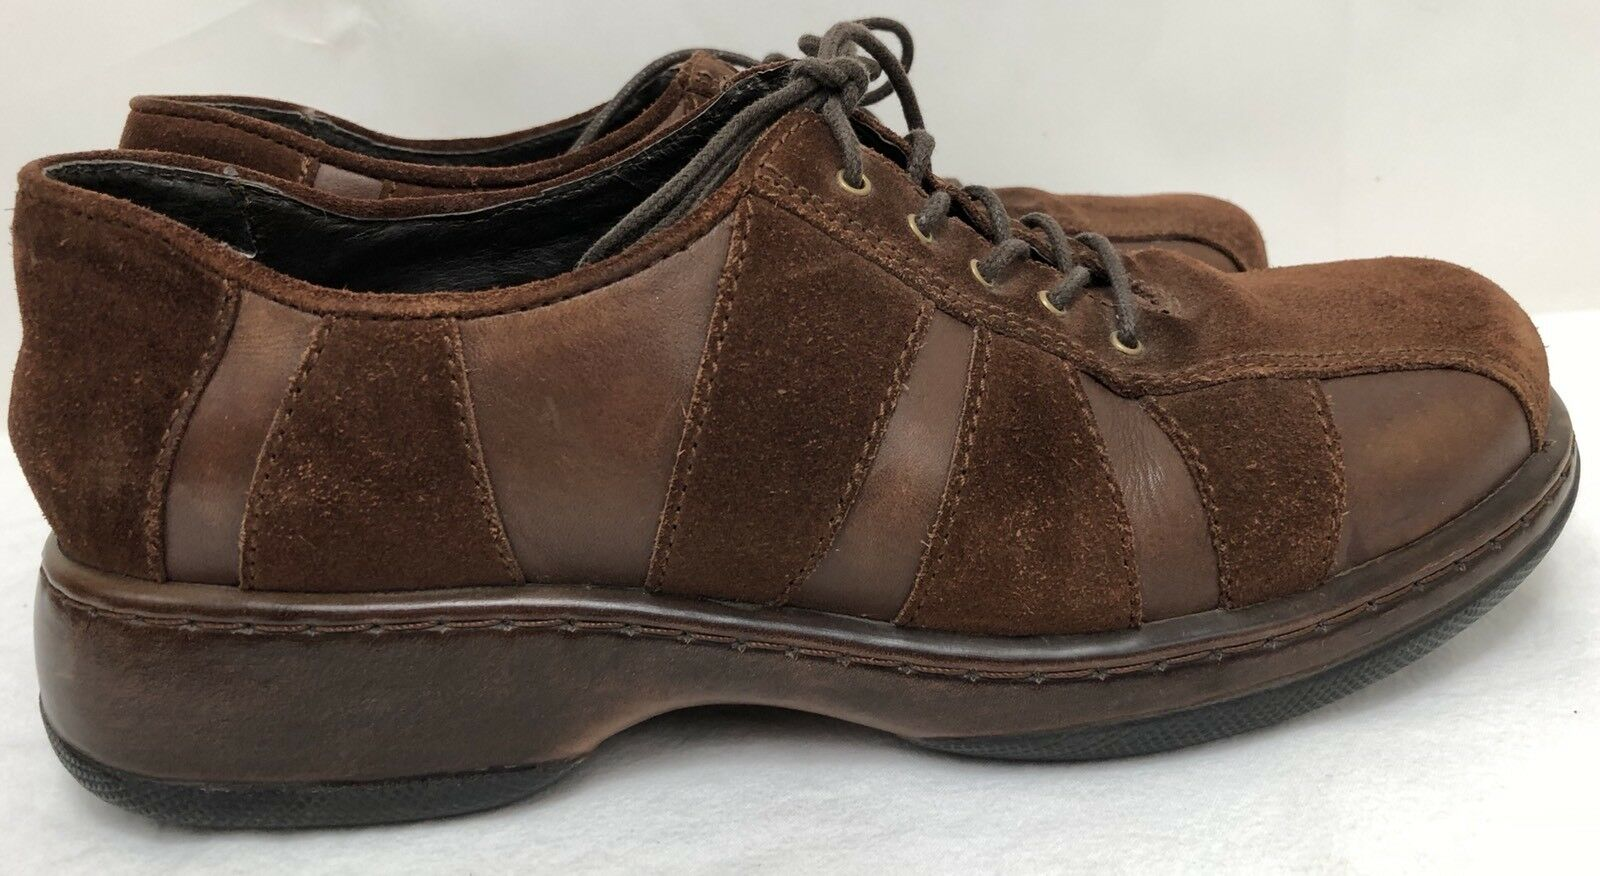 Womens DANSKO Brown Leather & Suede Oxfords Shoes Sneakers SIZE 39 US 8.5-9